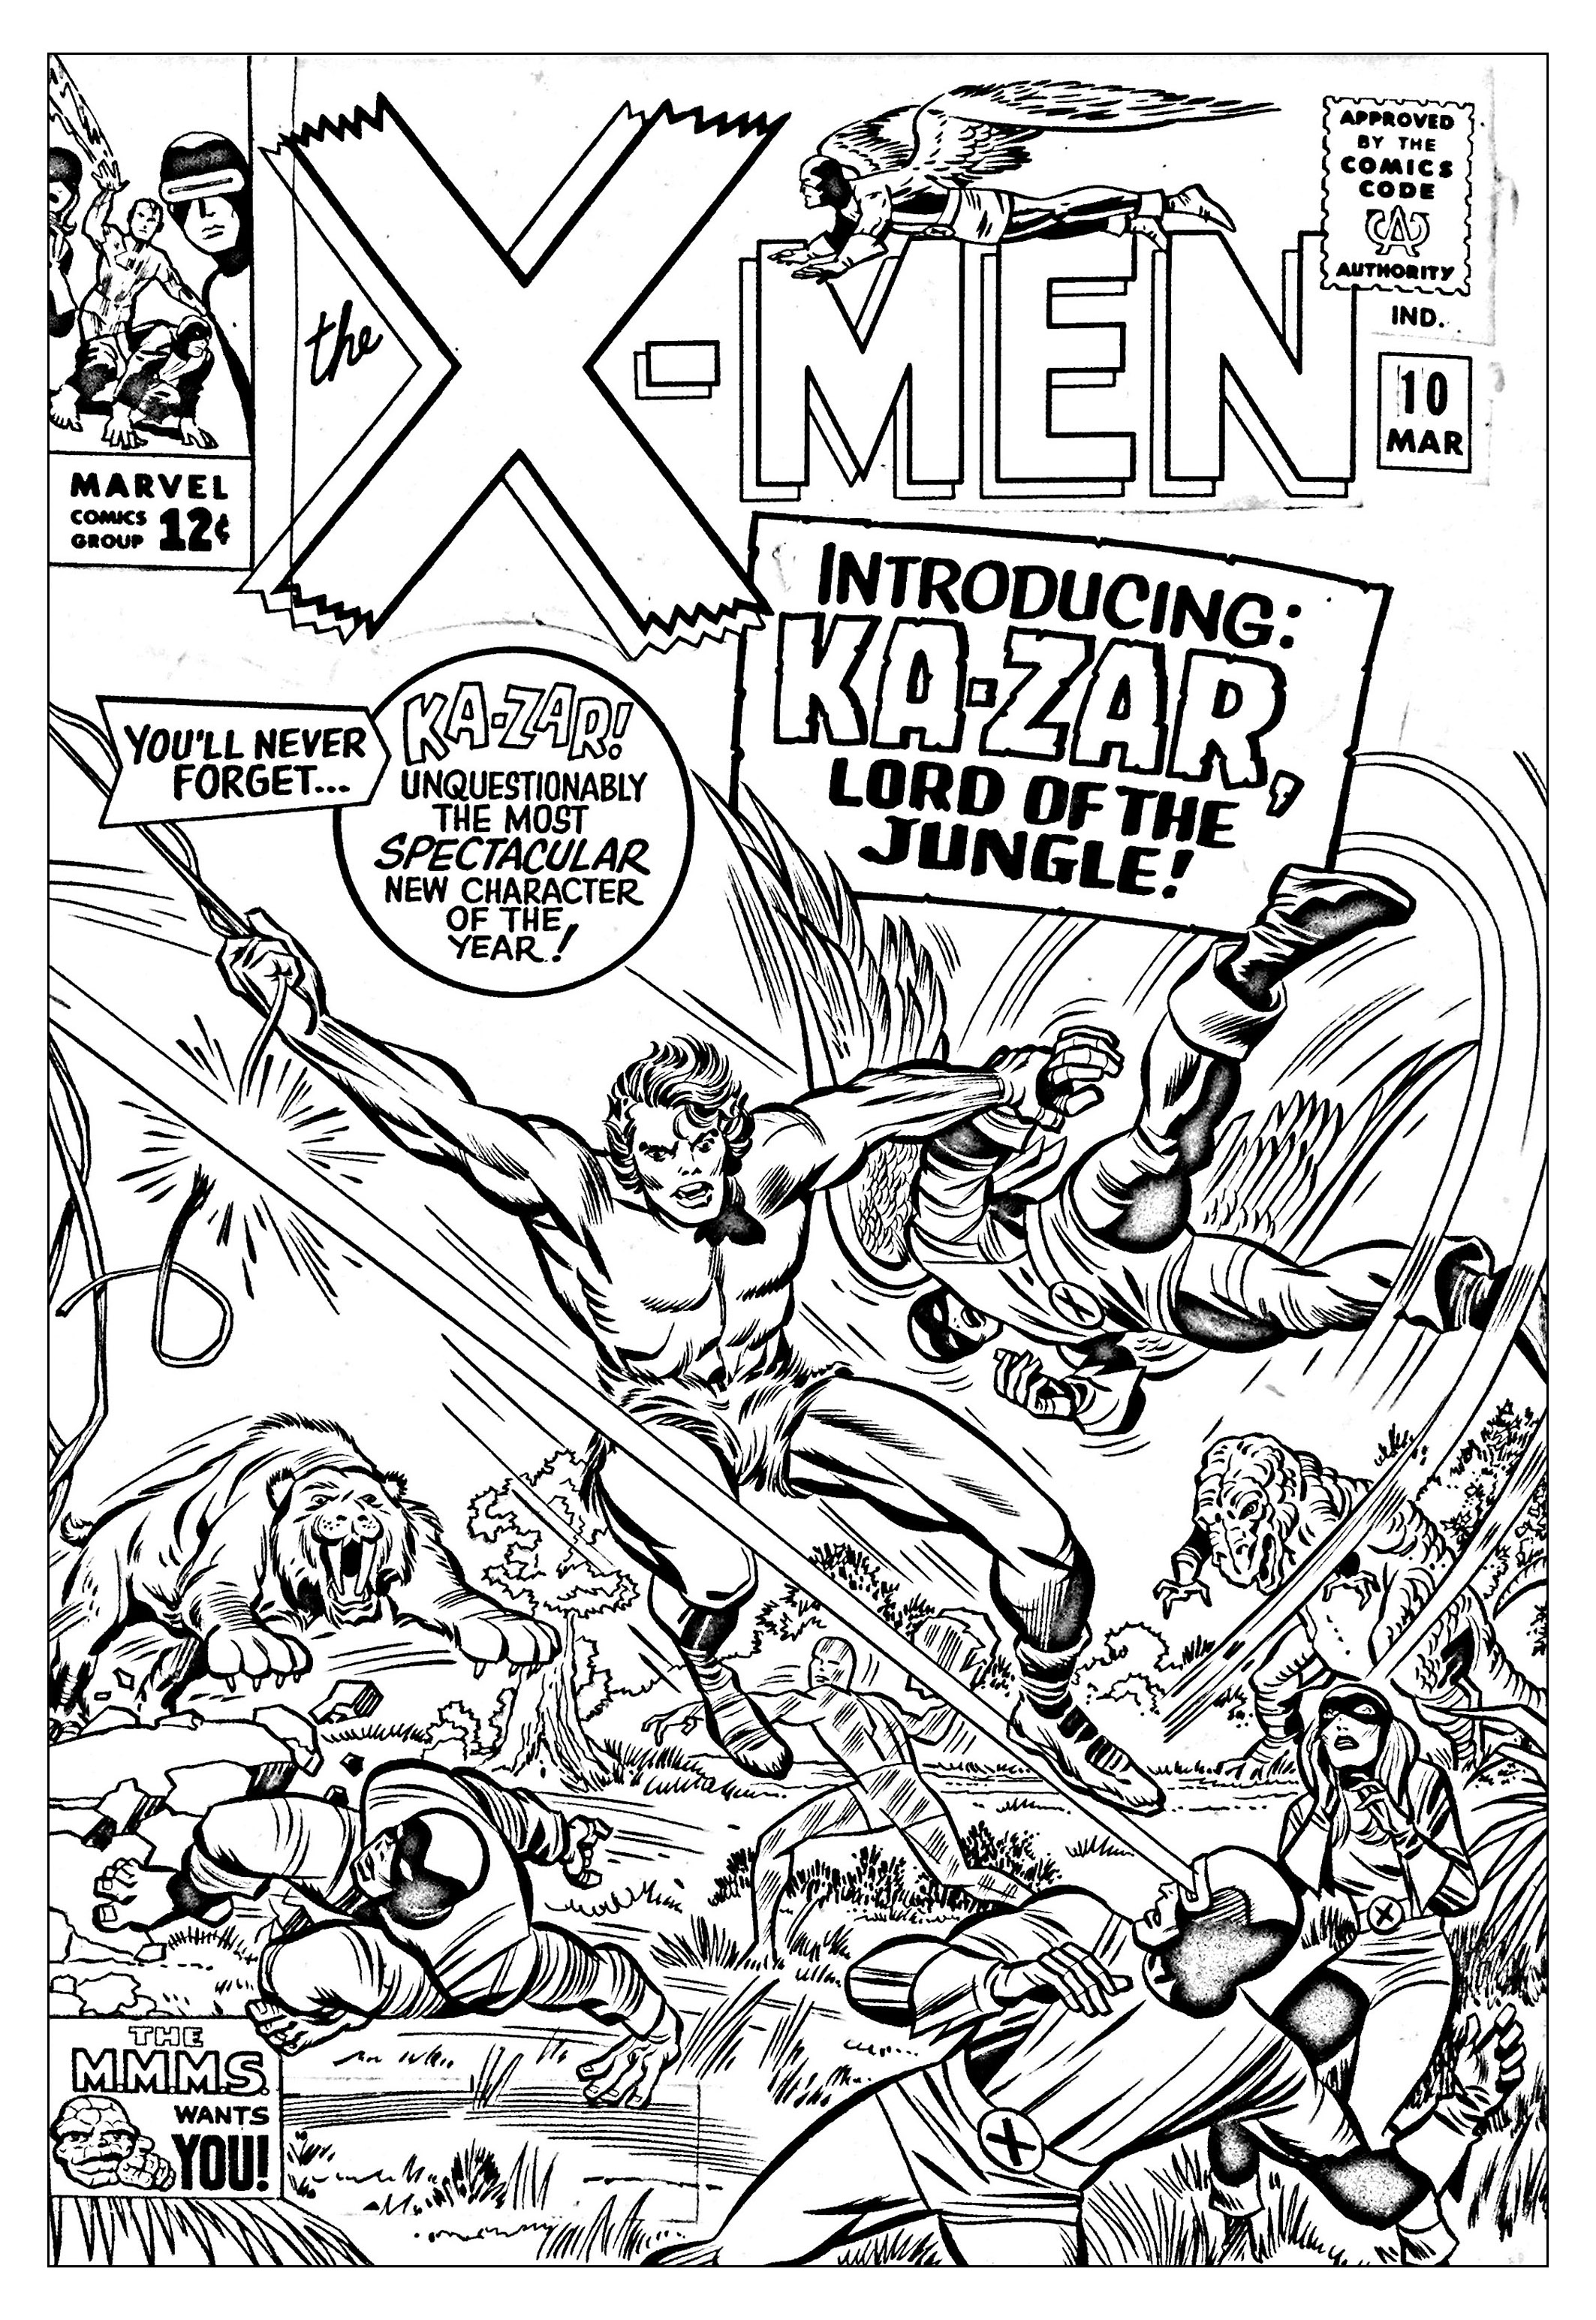 Coloriage créé à partir d'une couverture inédite de 1965 du Comic Book X-Men (Source : Jack Kirby, King of comics)